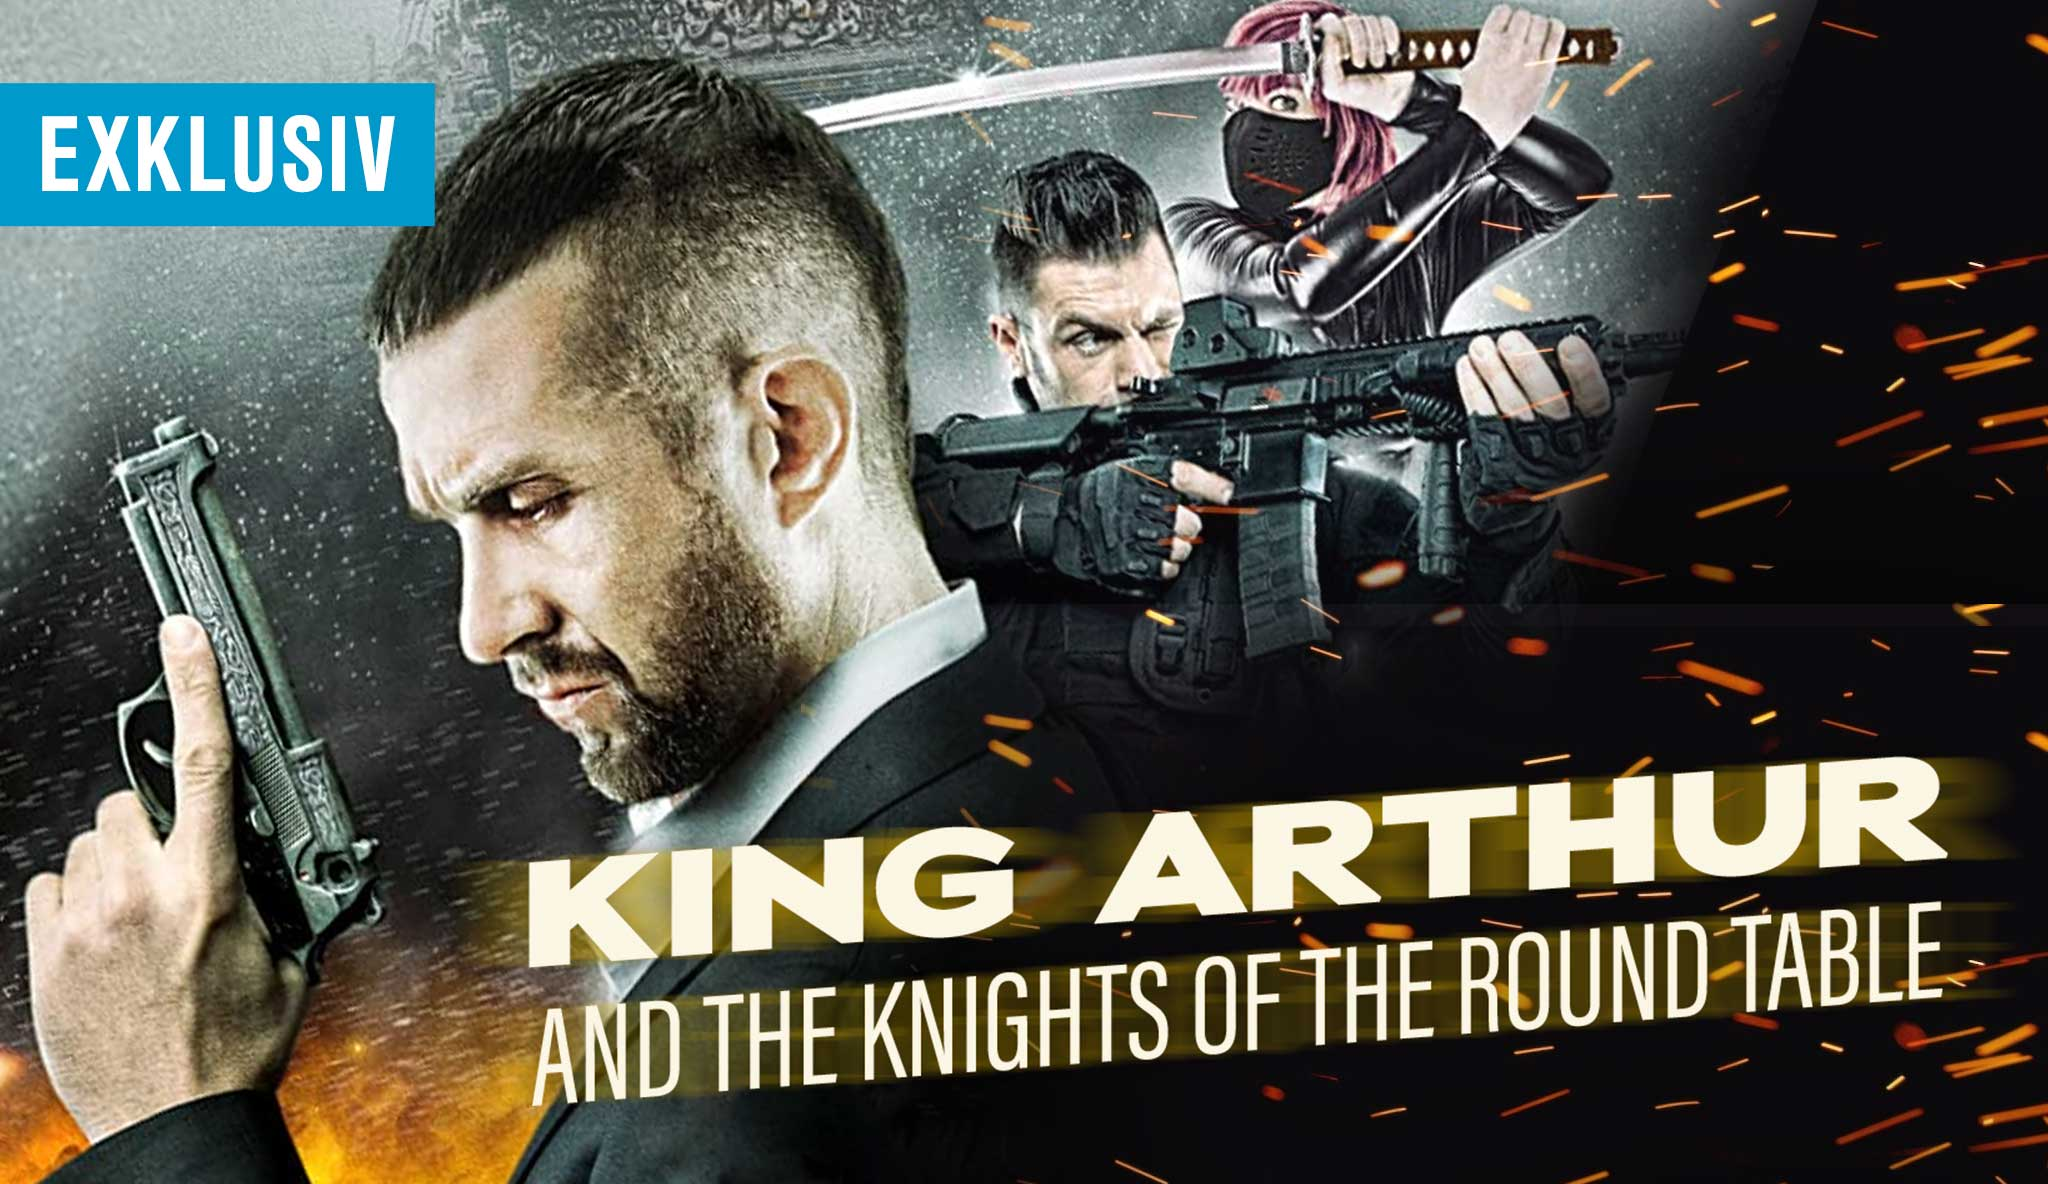 king-arthur-and-the-knights-of-the-round-table\header.jpg